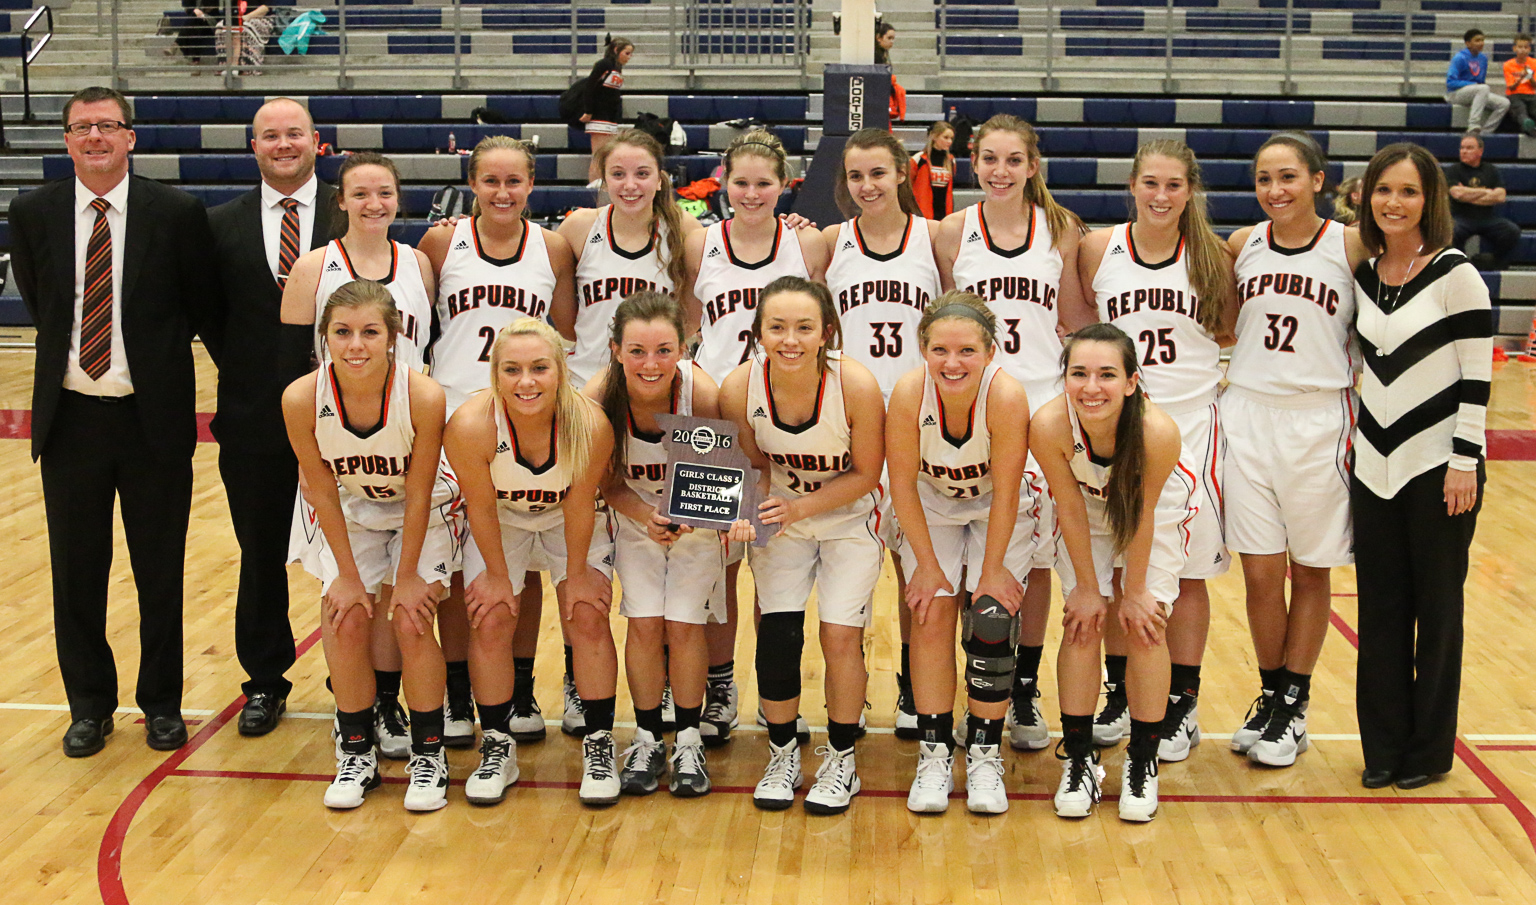 District Domination: Republic Whips Nixa To Win Title